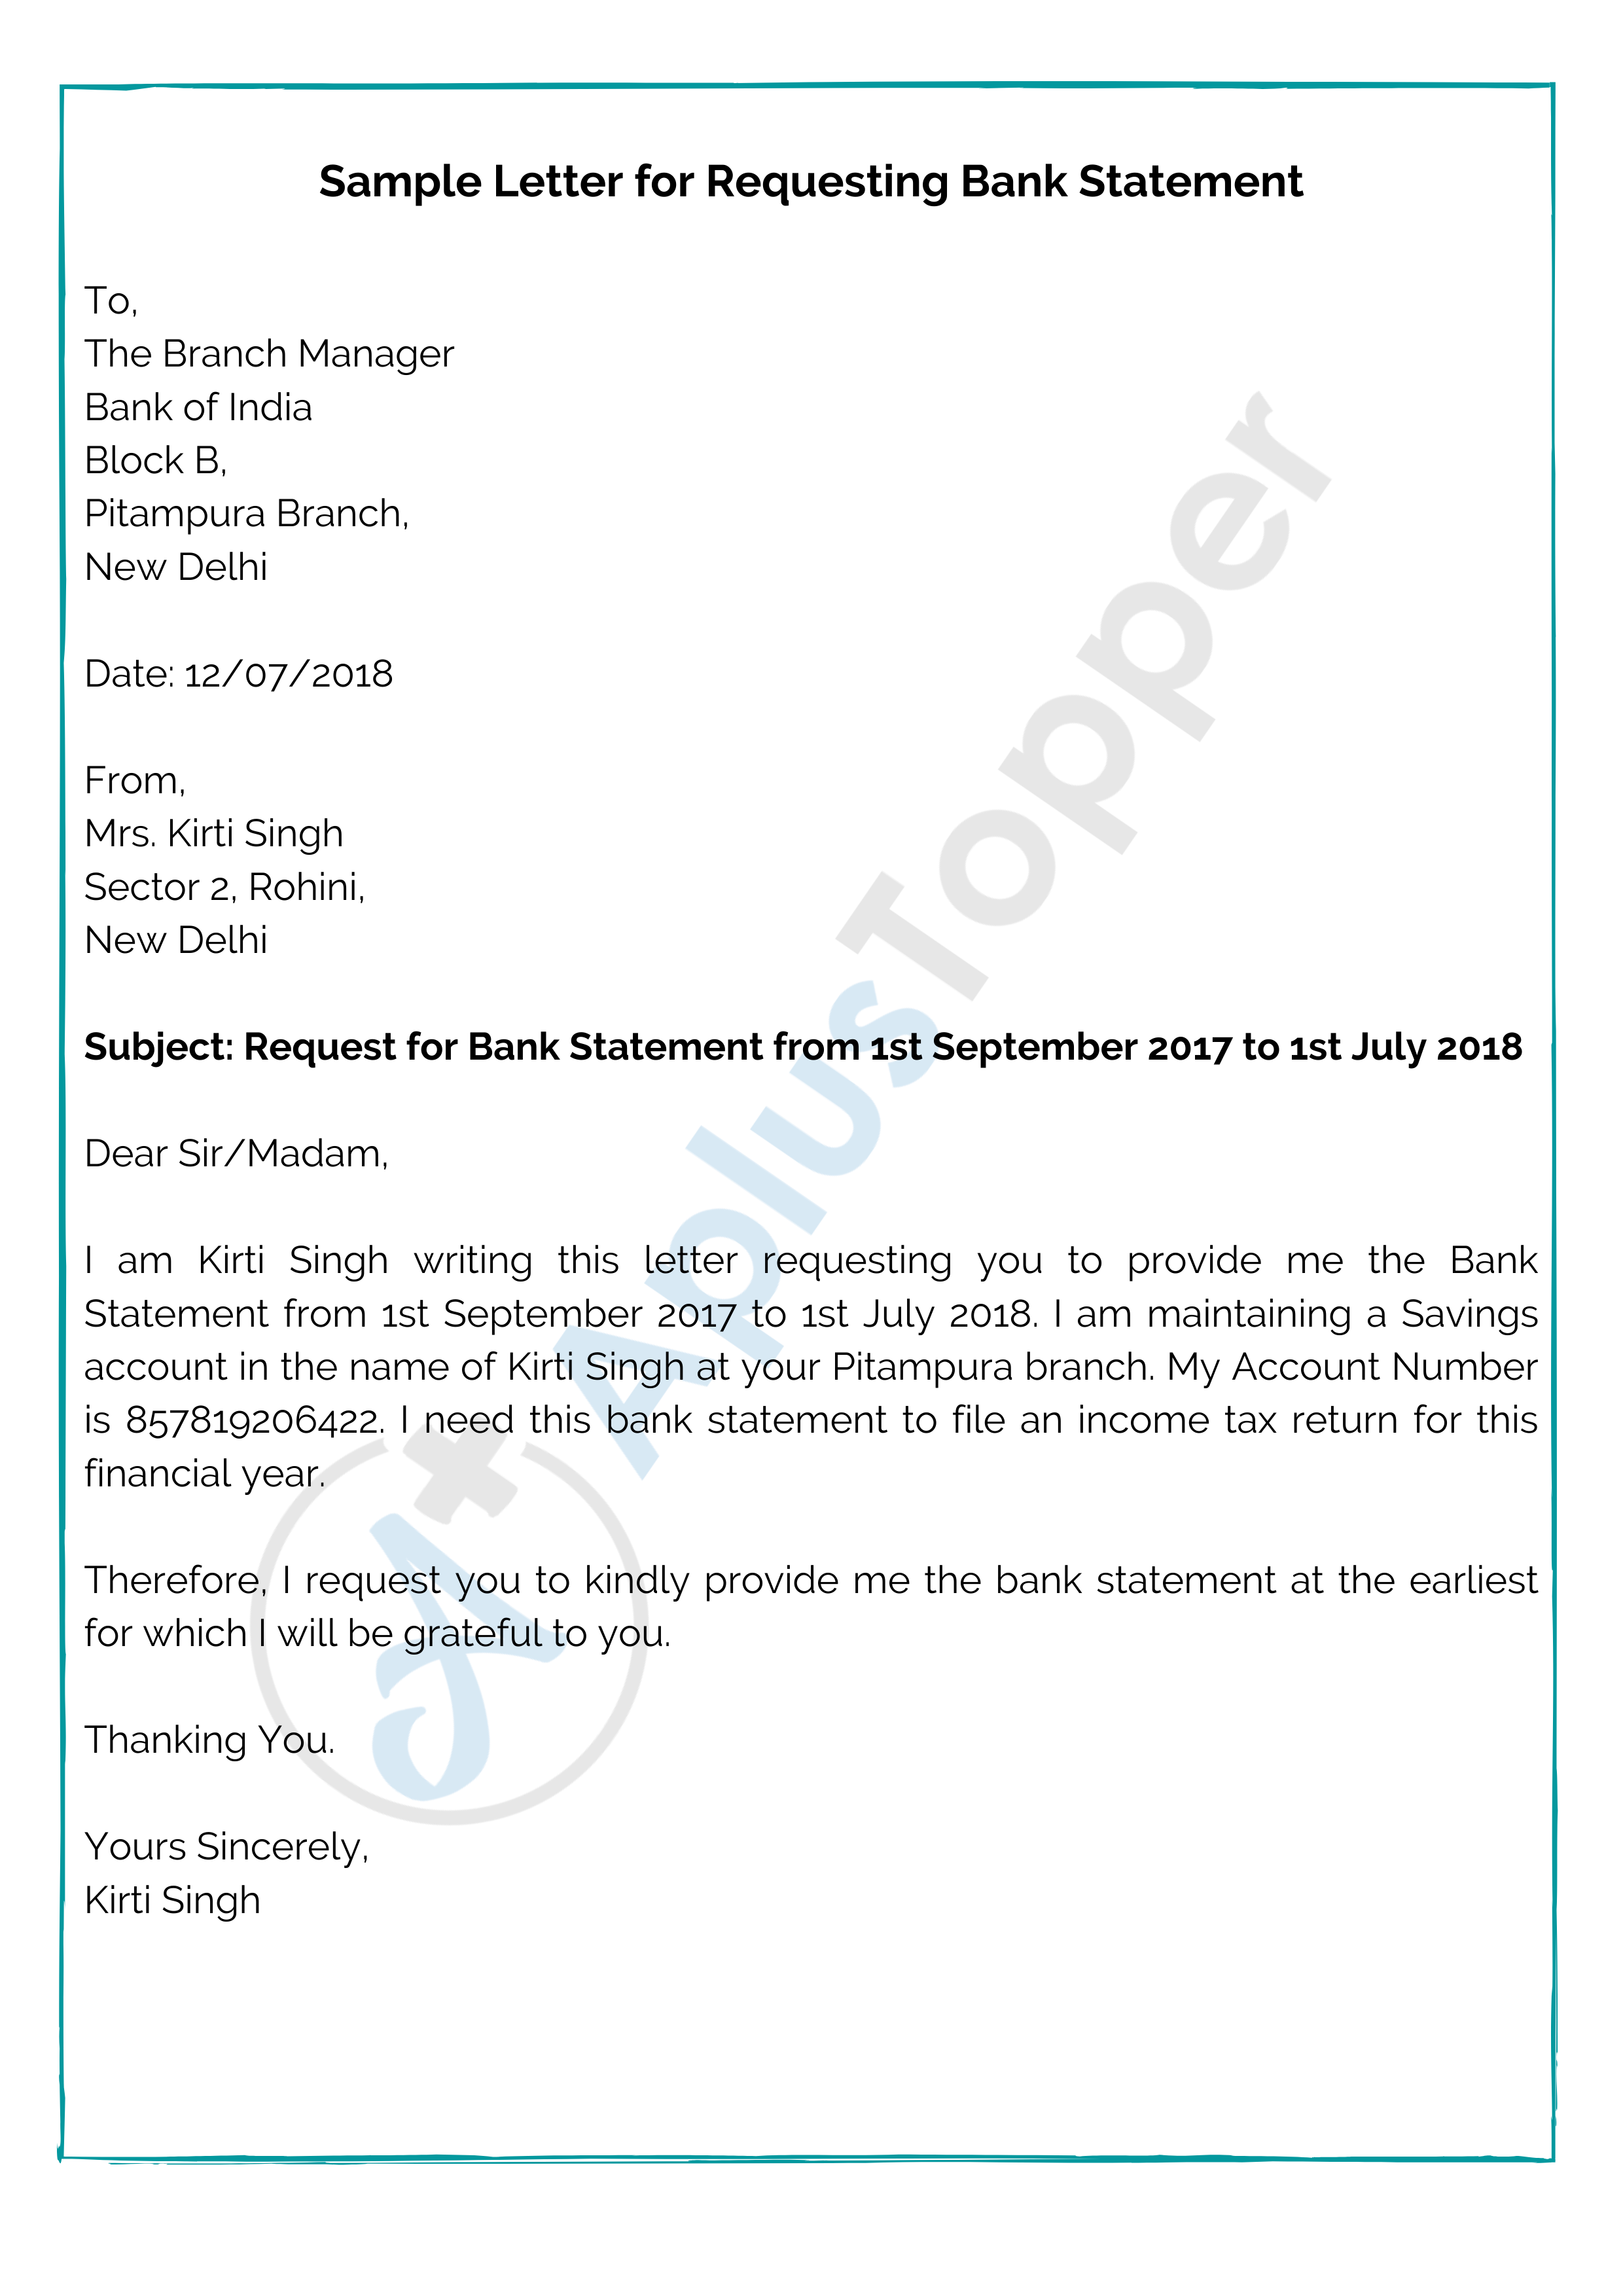 Bank Statement Request Letter Format Samples And How To Write A Bank Statement Request Letter A Plus Topper